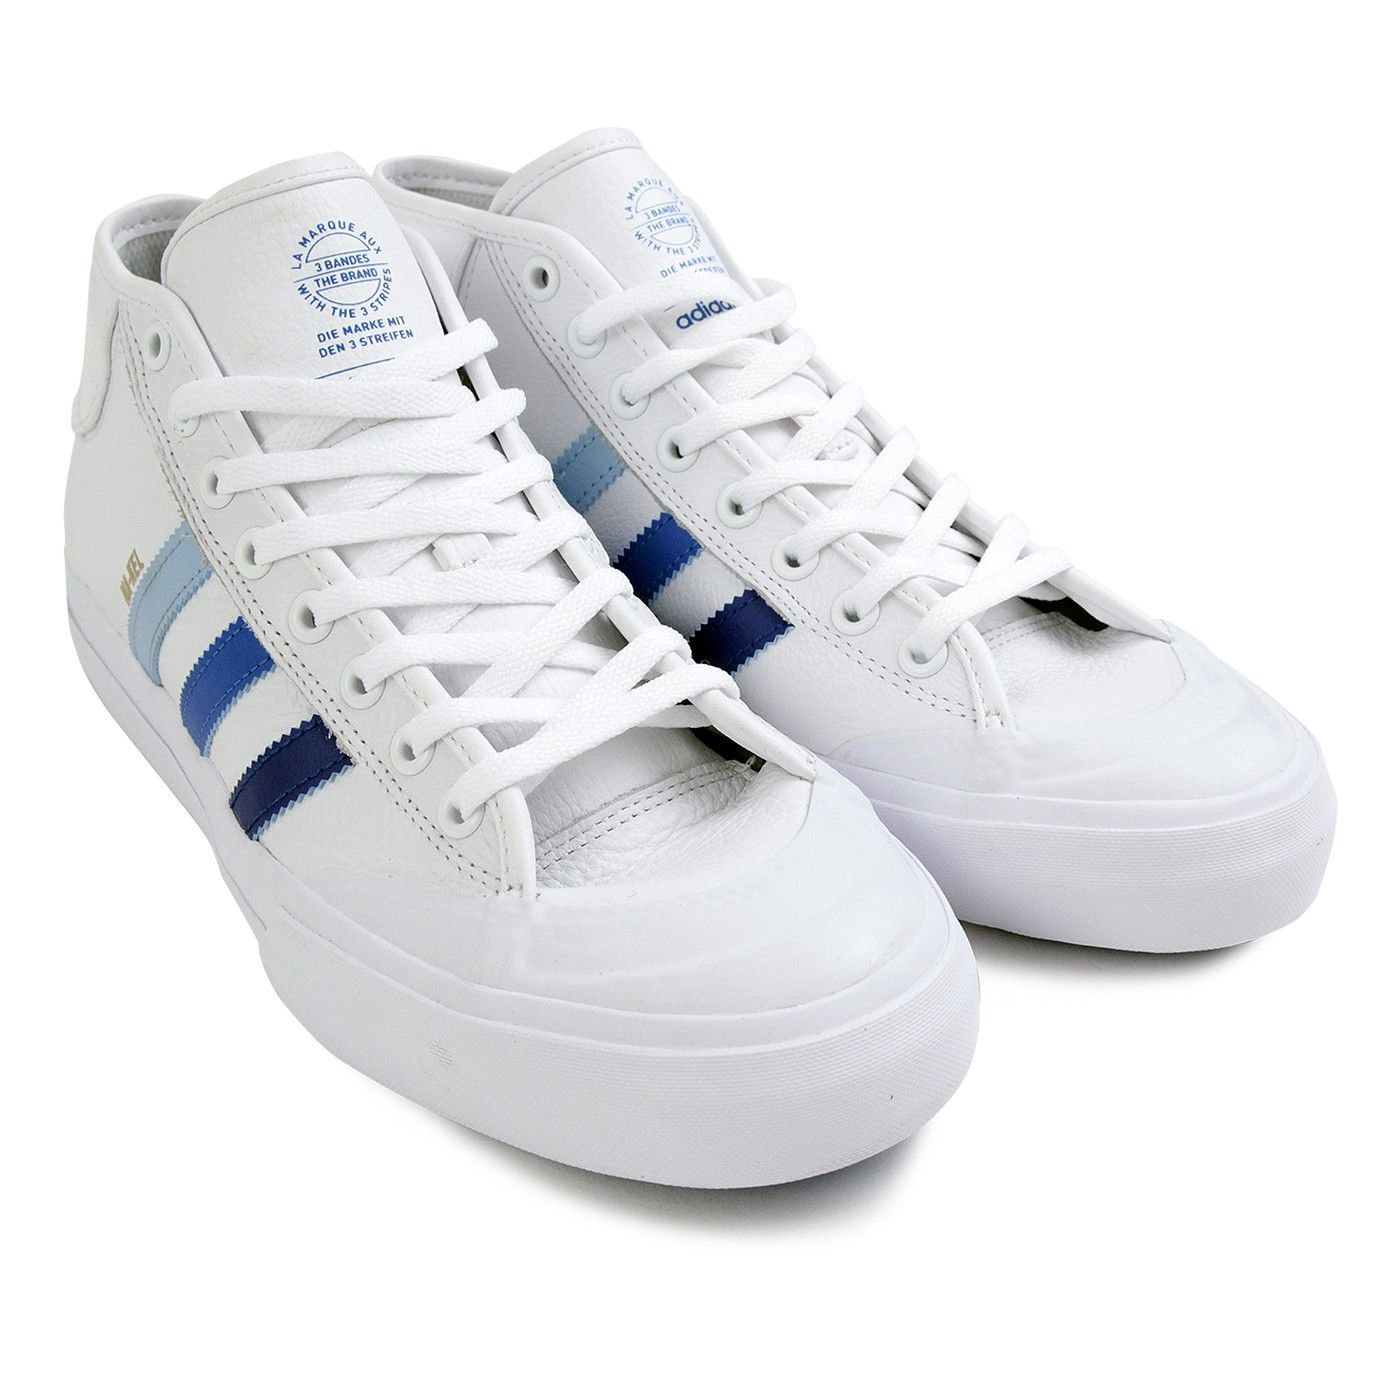 0a01ec9f3ddeb Matchcourt Mid Na-Kel Smith Shoes in White / Collegiate Royal ...